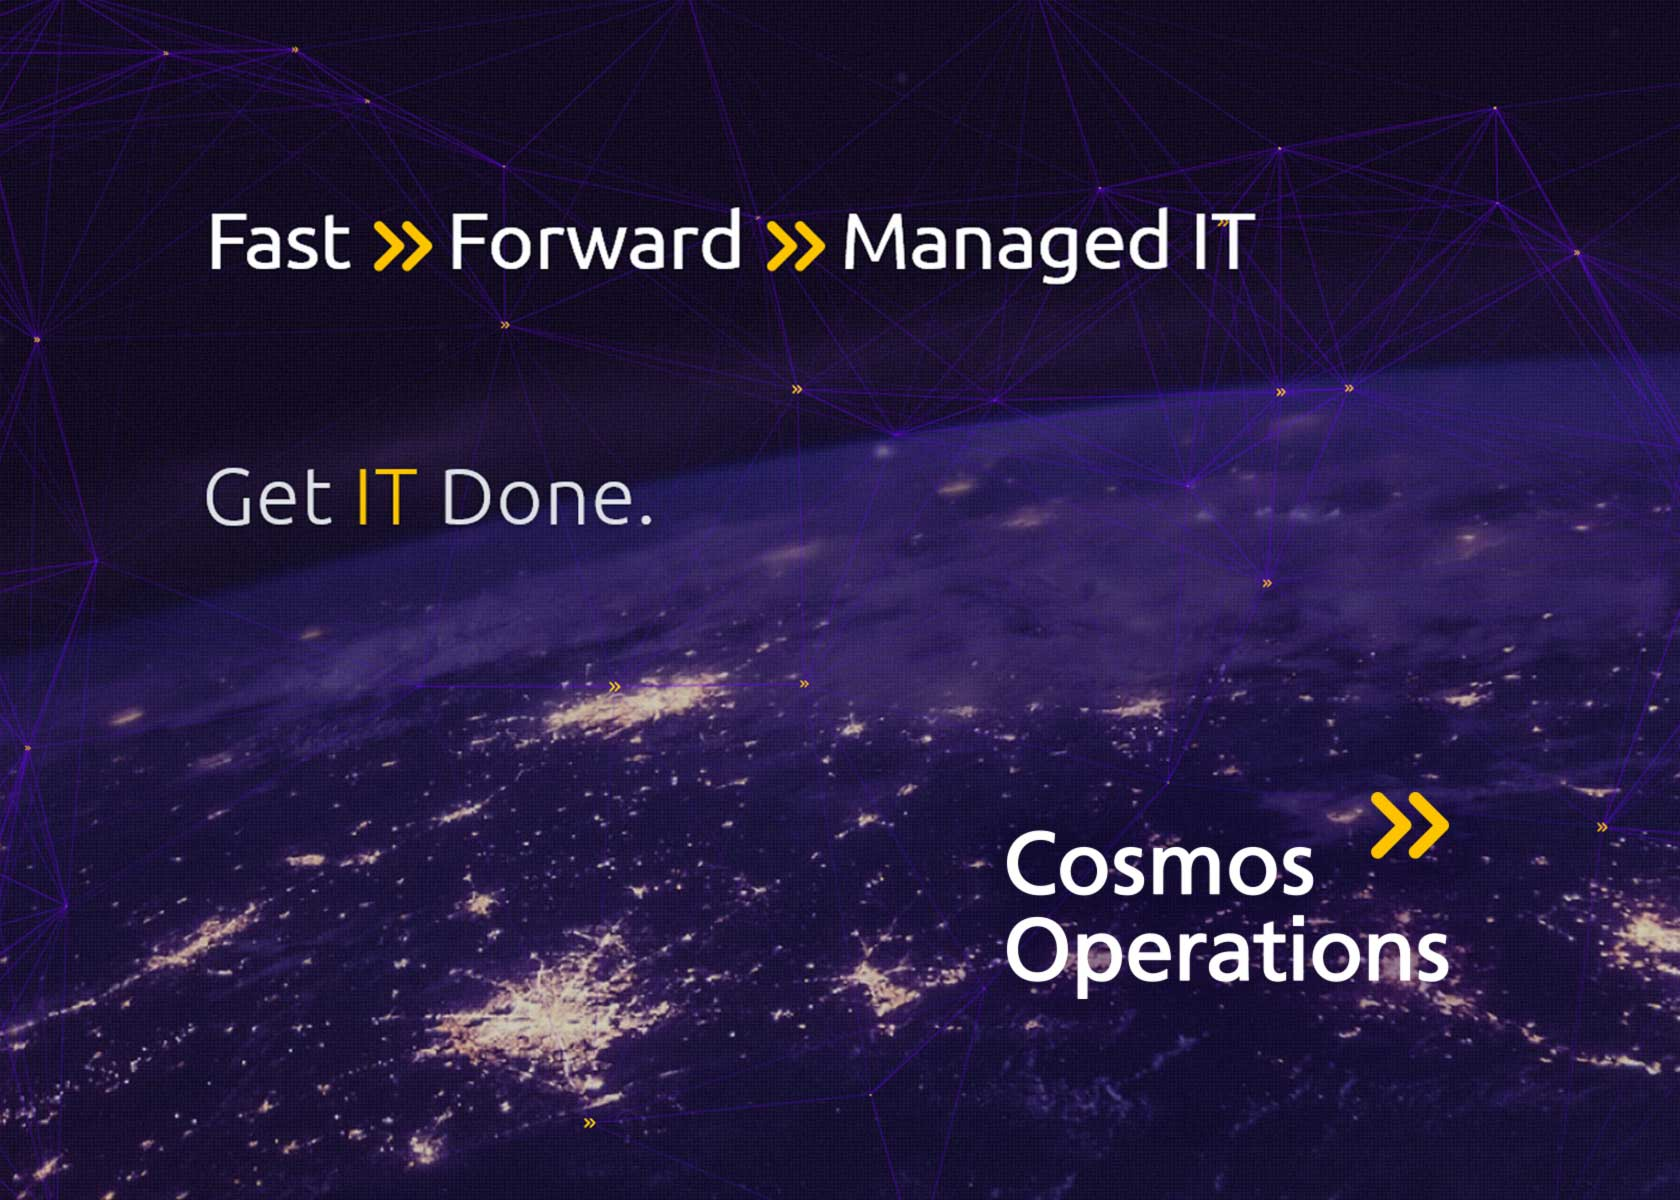 Fast Forward Managed IT Operations